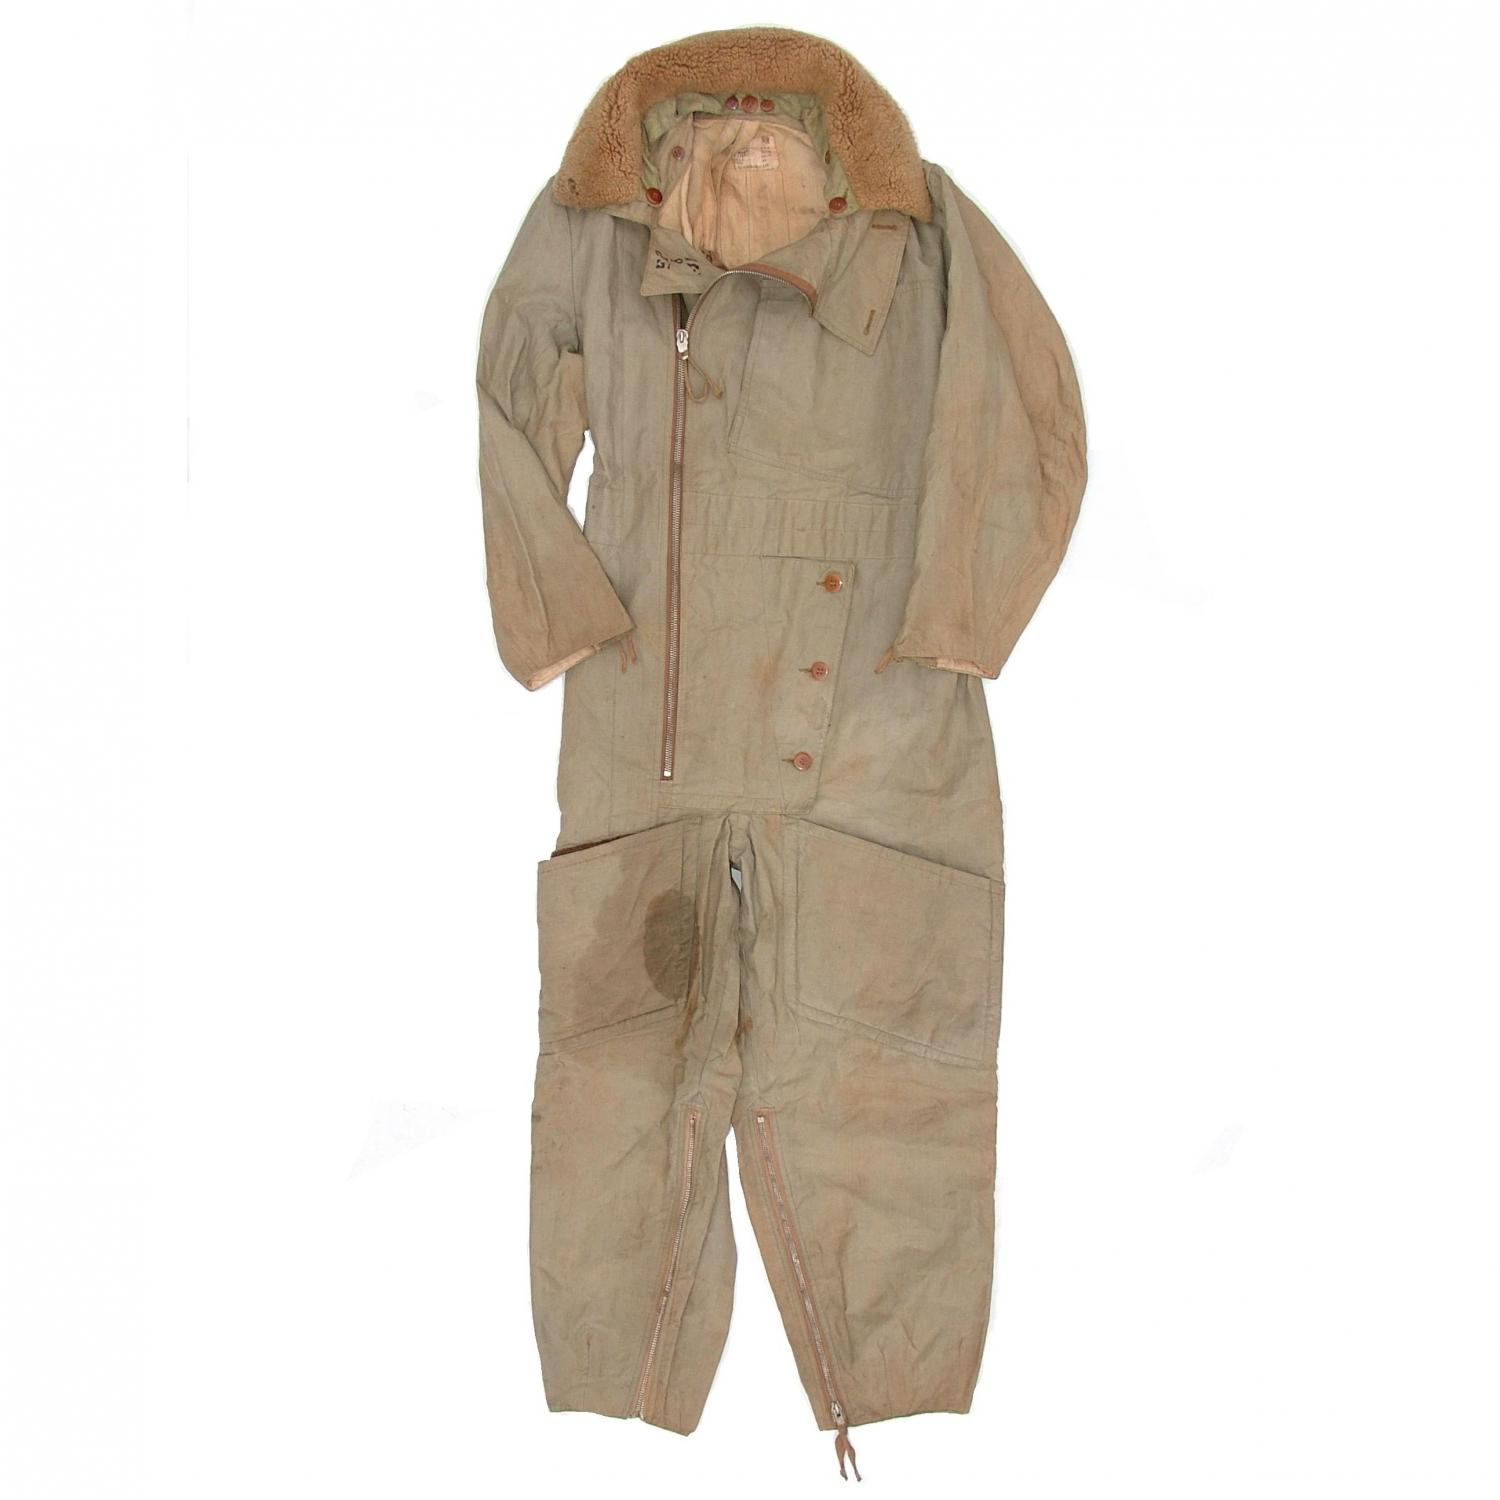 RAF 1930 Pattern Flying Suit